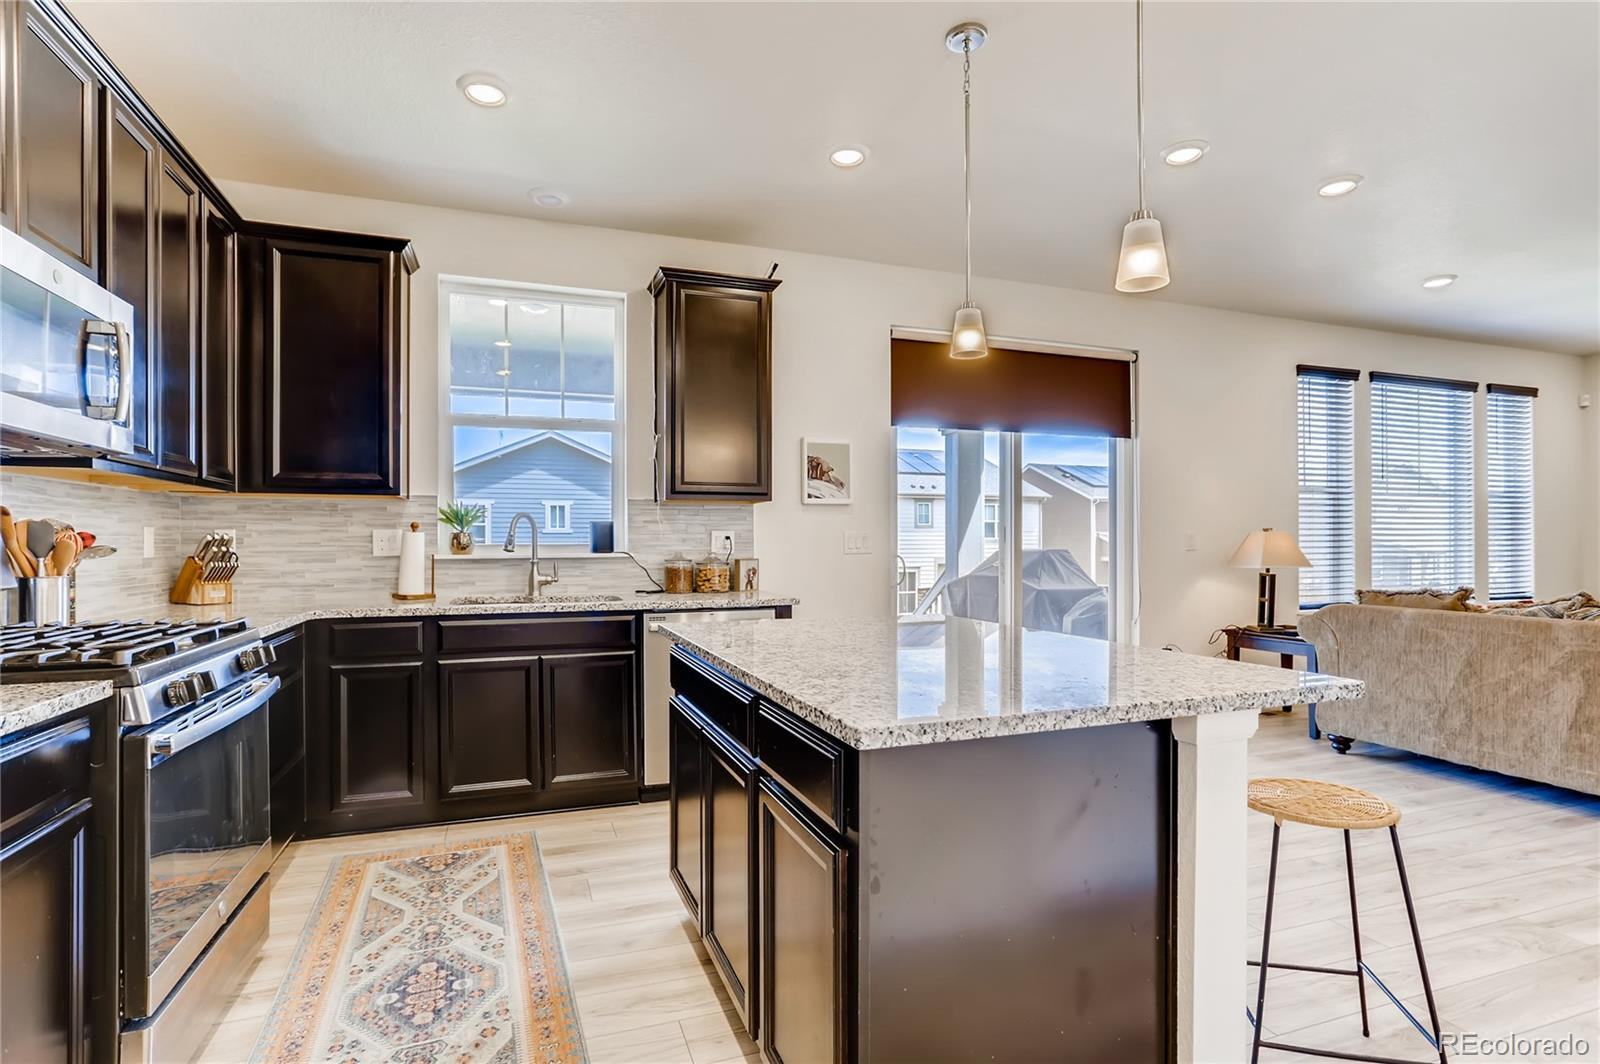 MLS# 2145354 - 13 - 26325 E Canal Place, Aurora, CO 80018